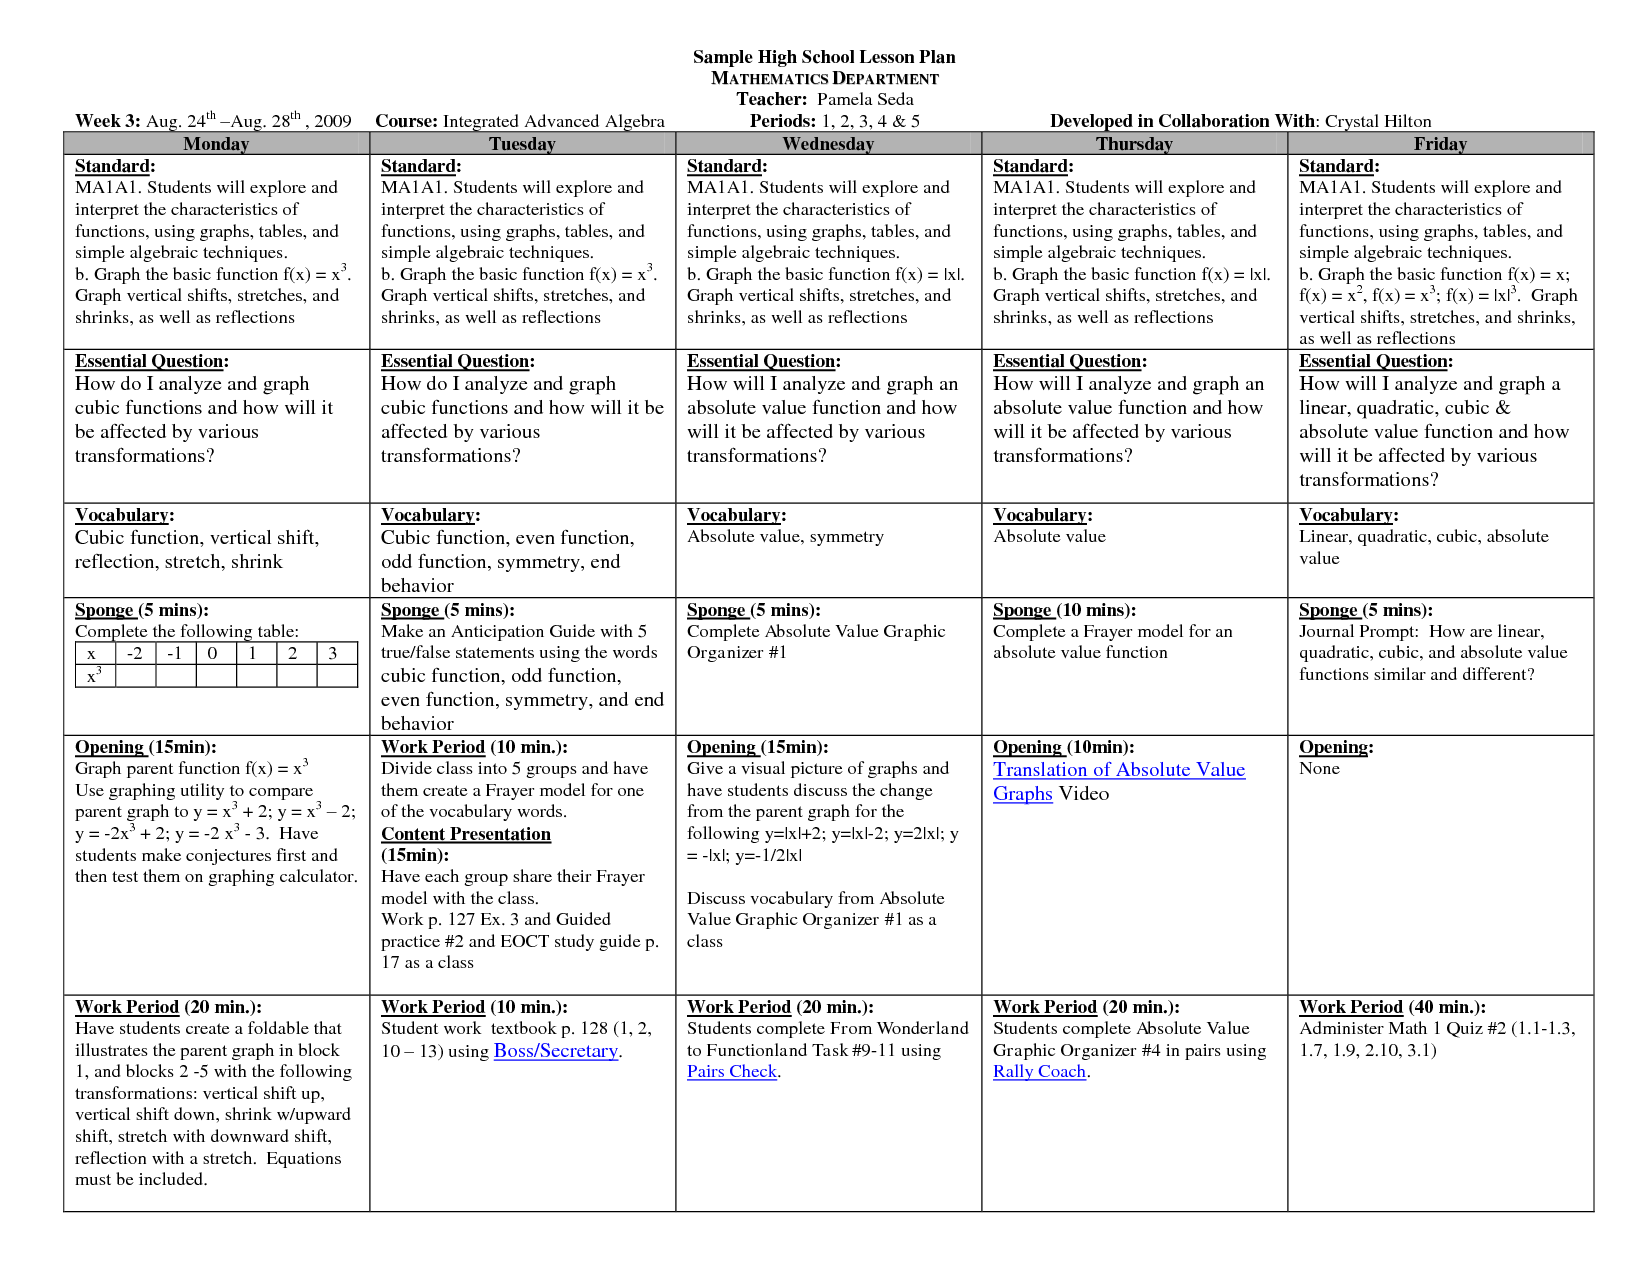 Math Lesson Plan Template High Schoolsample Hs Math Weekly Lesson Plan Ngrg